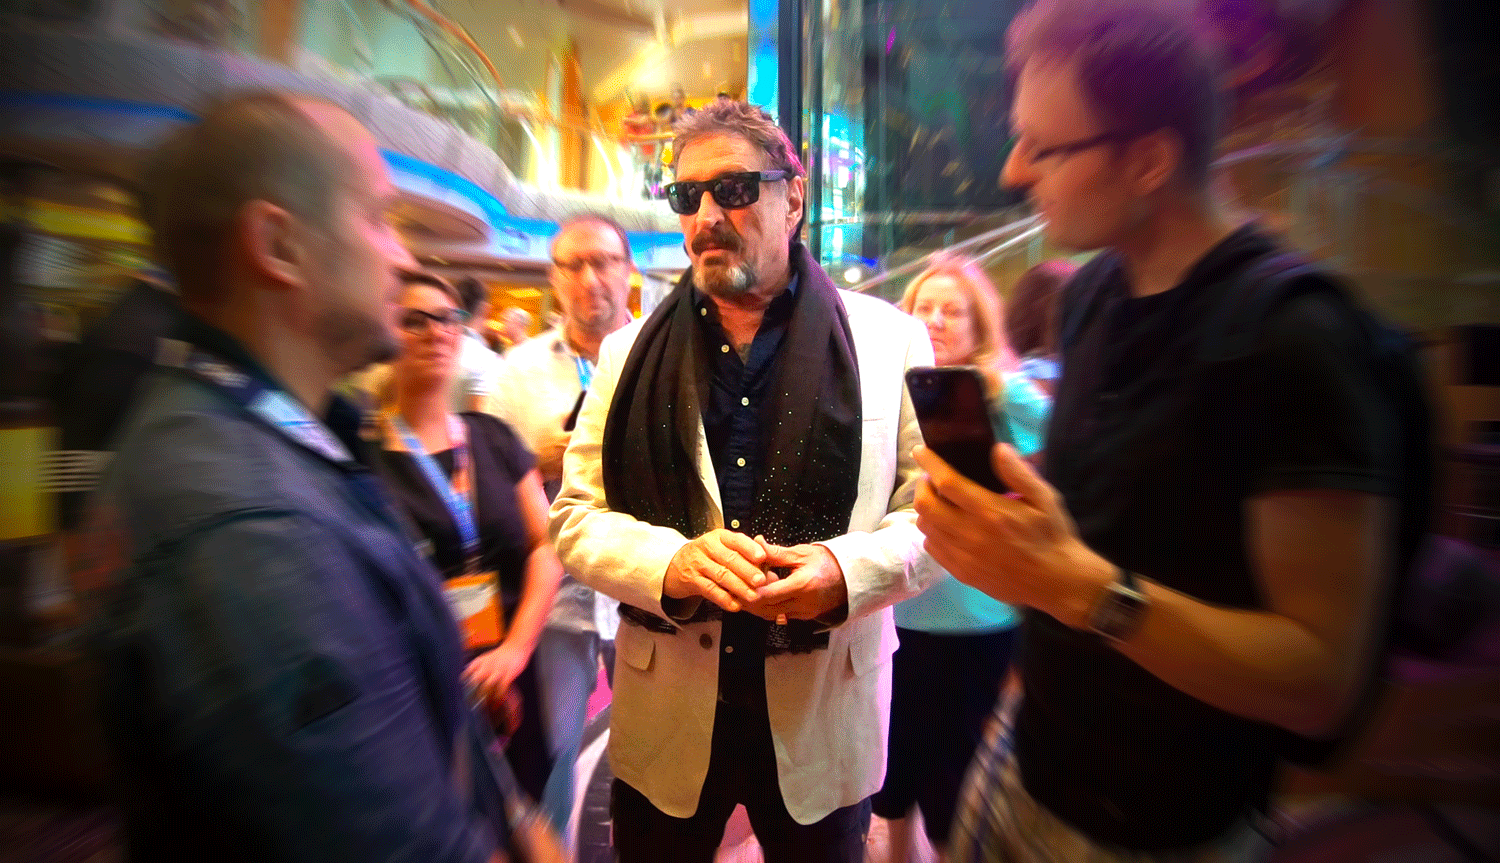 Guns, Martinis, and  Cryptocurrency: My Time With John McAfee